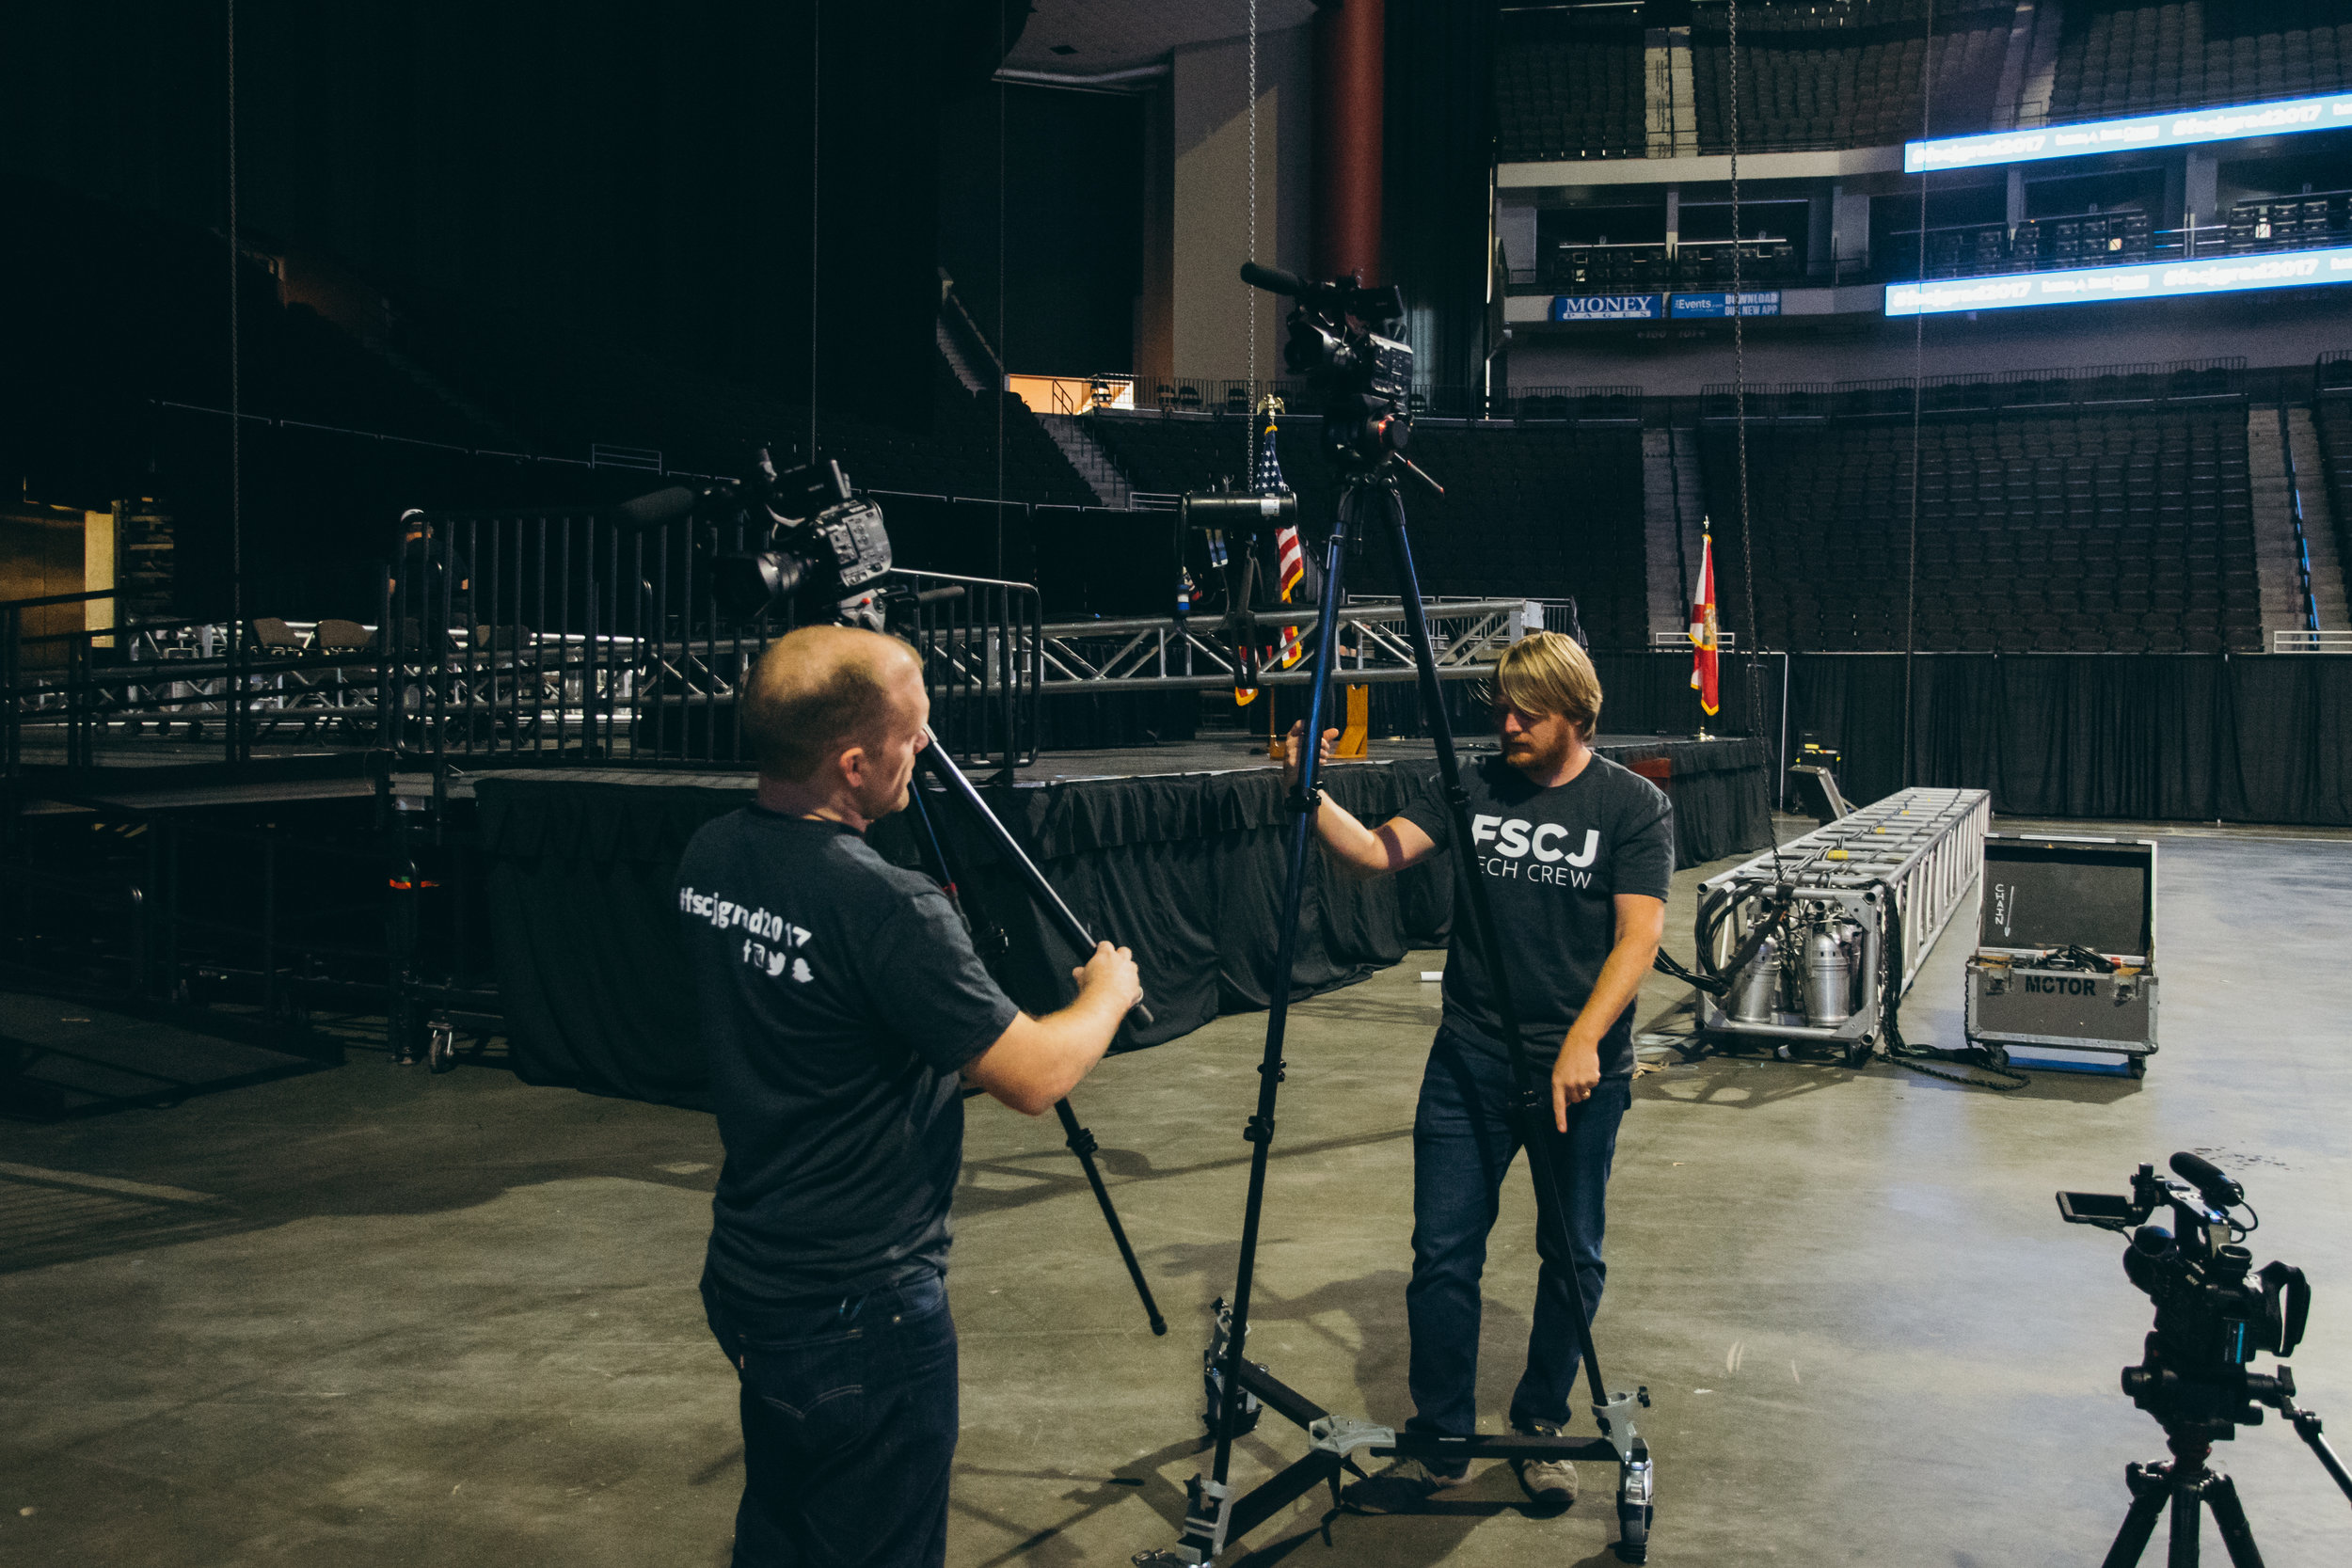 Michael and Mark begin setting up cameras.